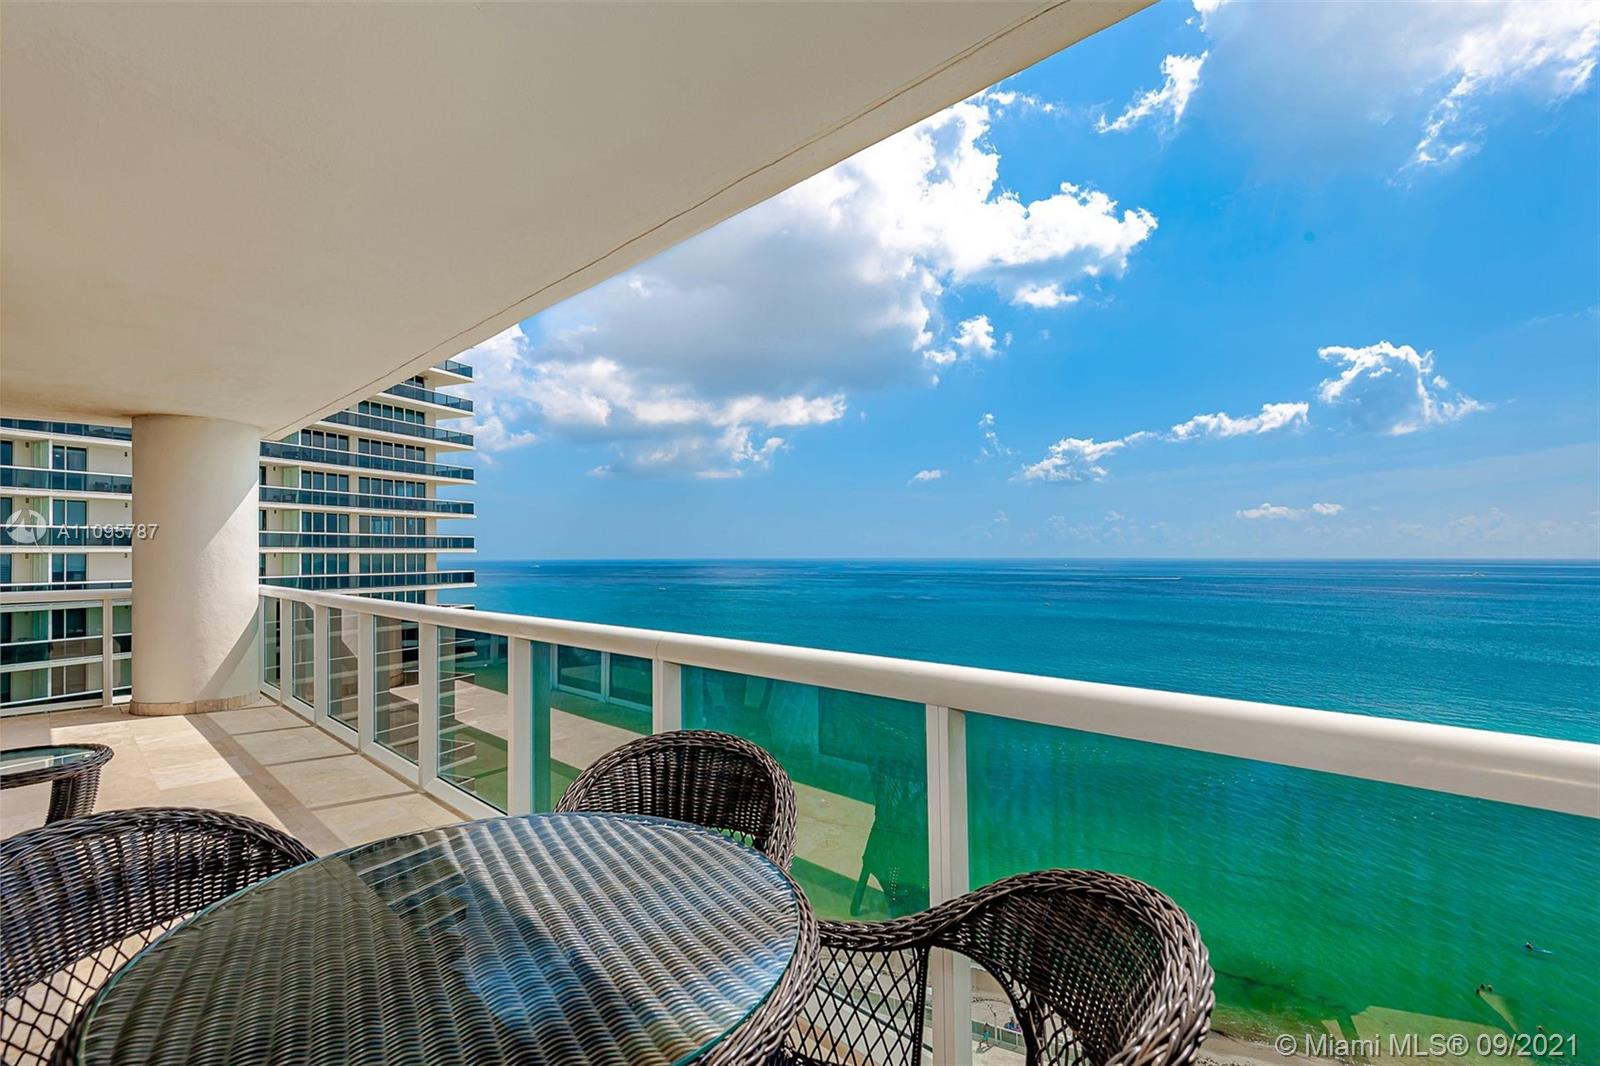 Beautiful corner unit with northeast direct ocean & intracoastal views from the moment you walk in, incredible breathtaking views of the ocean !This 3 bedroom 3.5  baths boasts 2078 sq ft and a 586 sq ft wrap around terrace. Over $100,000. upgrades with custom built ins. European style kitchen with wood cabinetry and granite counter tops. Marble floors throughout. Custom doors w/matching door trim & baseboards. Master bath walk in shower & jacuzzi, double sinks, and bidet. Built in custom closets in all bedrooms. 2 parking spaces and storage unit included.  This luxury building offers 5-Star resort like amenities , full time concierge, security, 24-hour valet, access to 5 heated pools, 50,000 sq ft fitness center, spa with cold plunge, & hot tub. Café and beach side service. MUST SEE !!